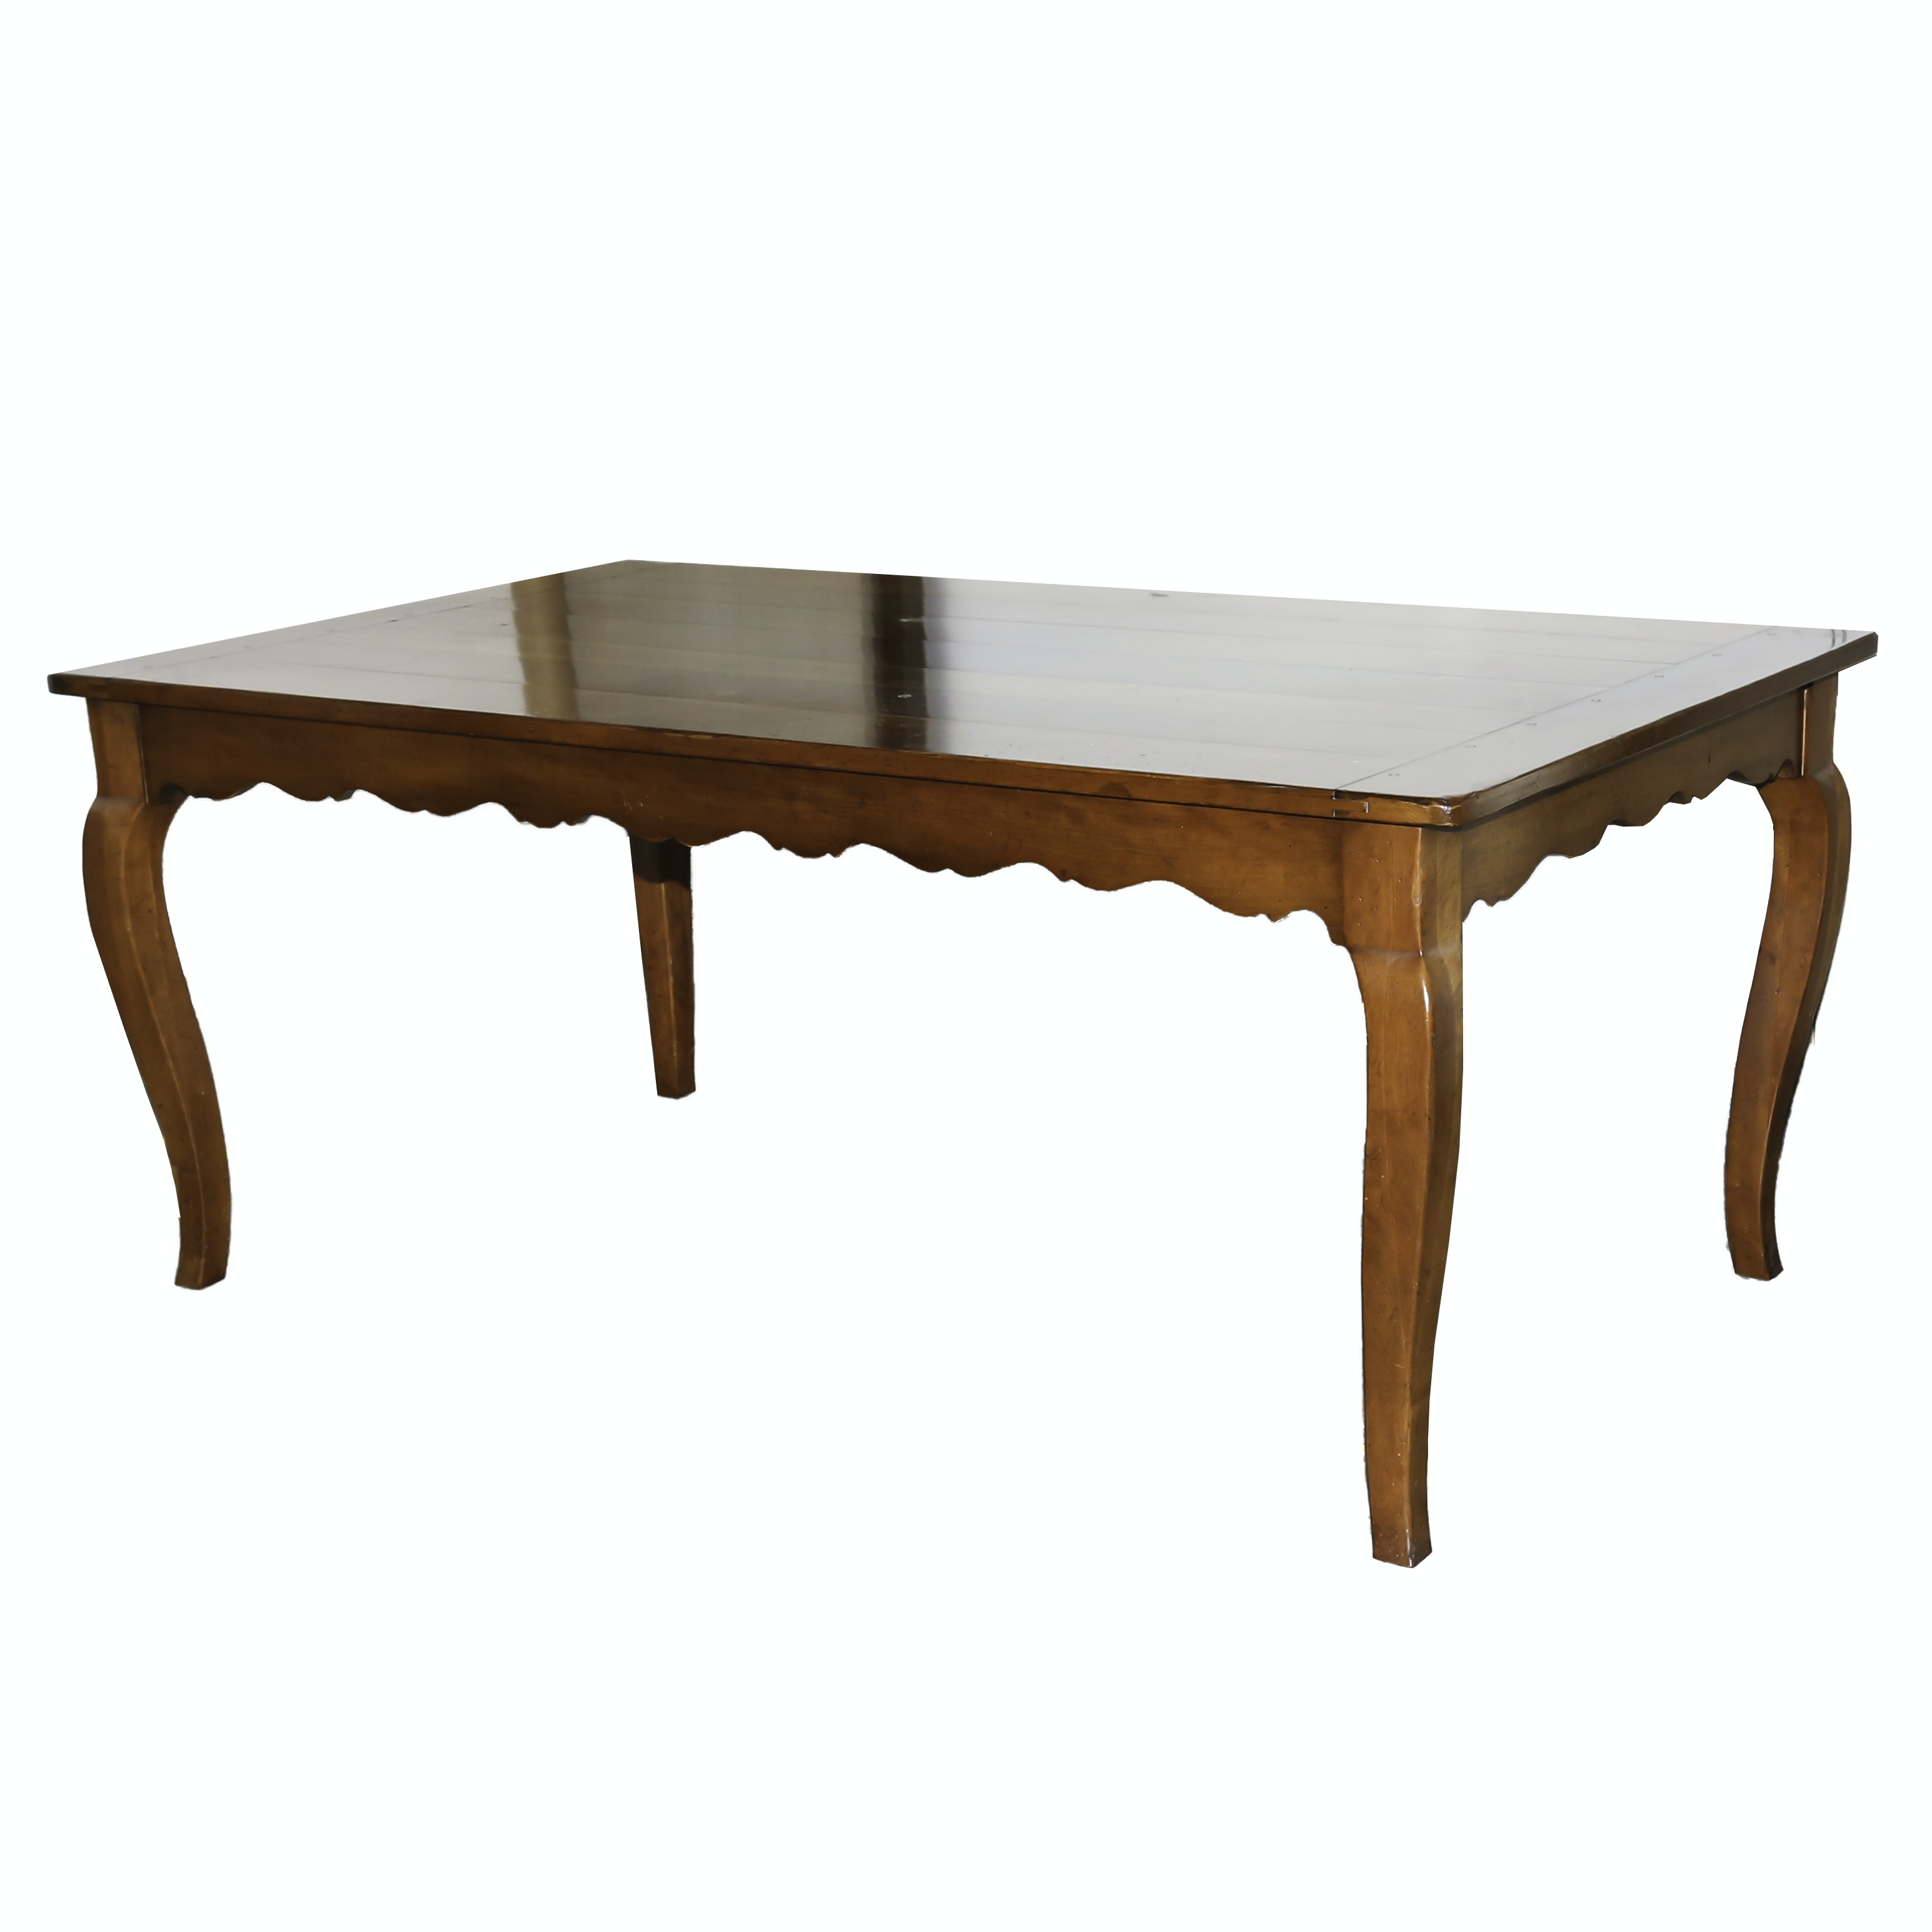 French Country Dining Table By Wright Table Company ...